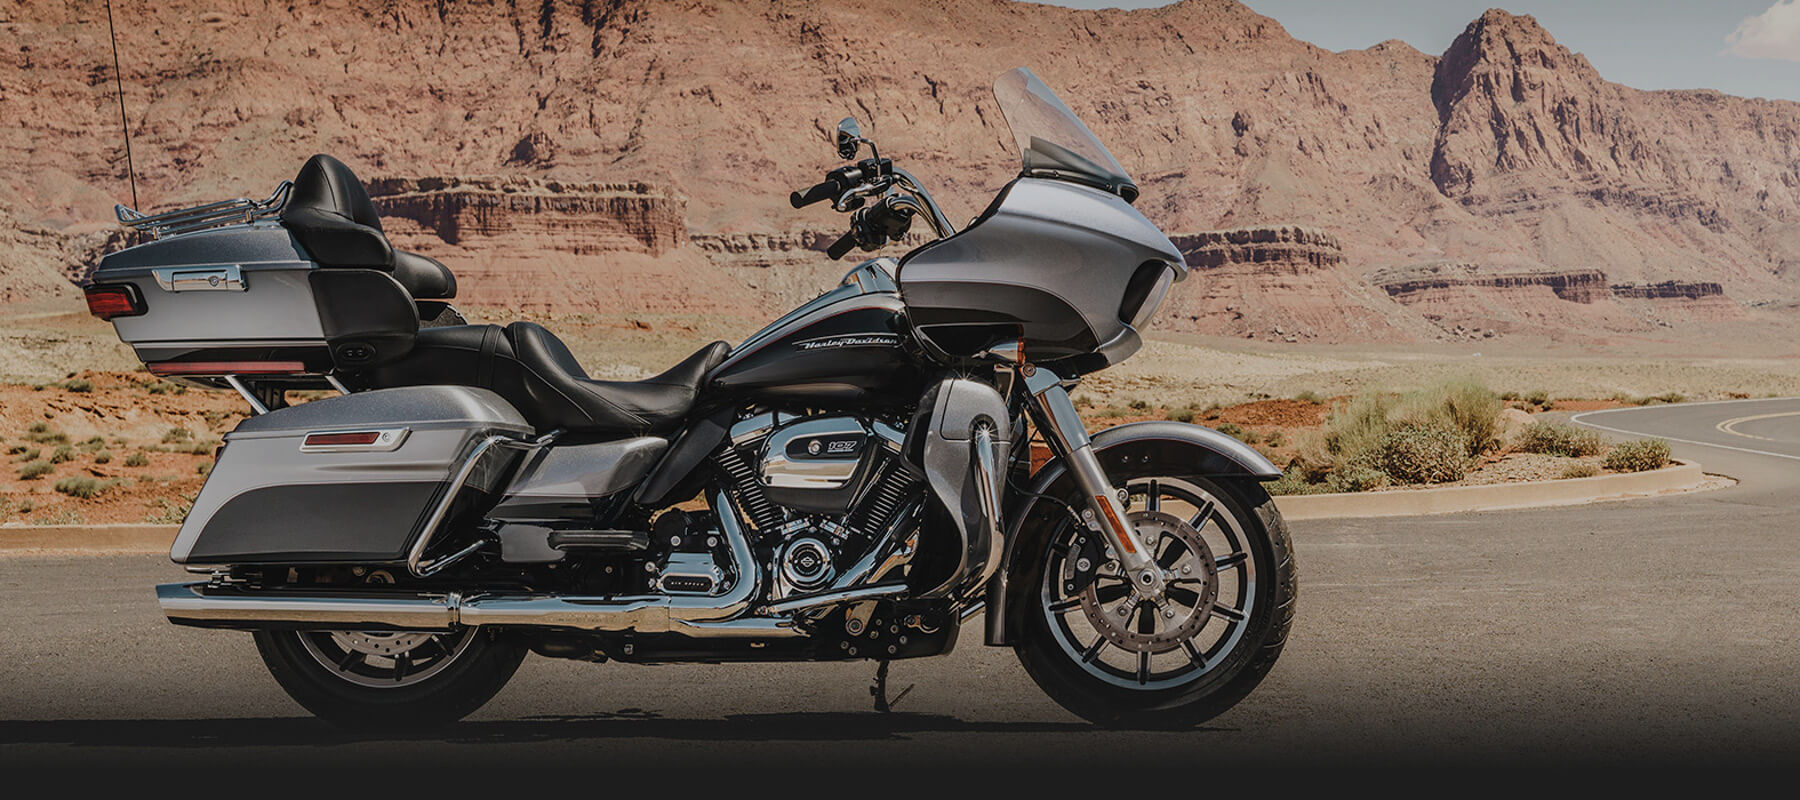 Road Glide Ultra background